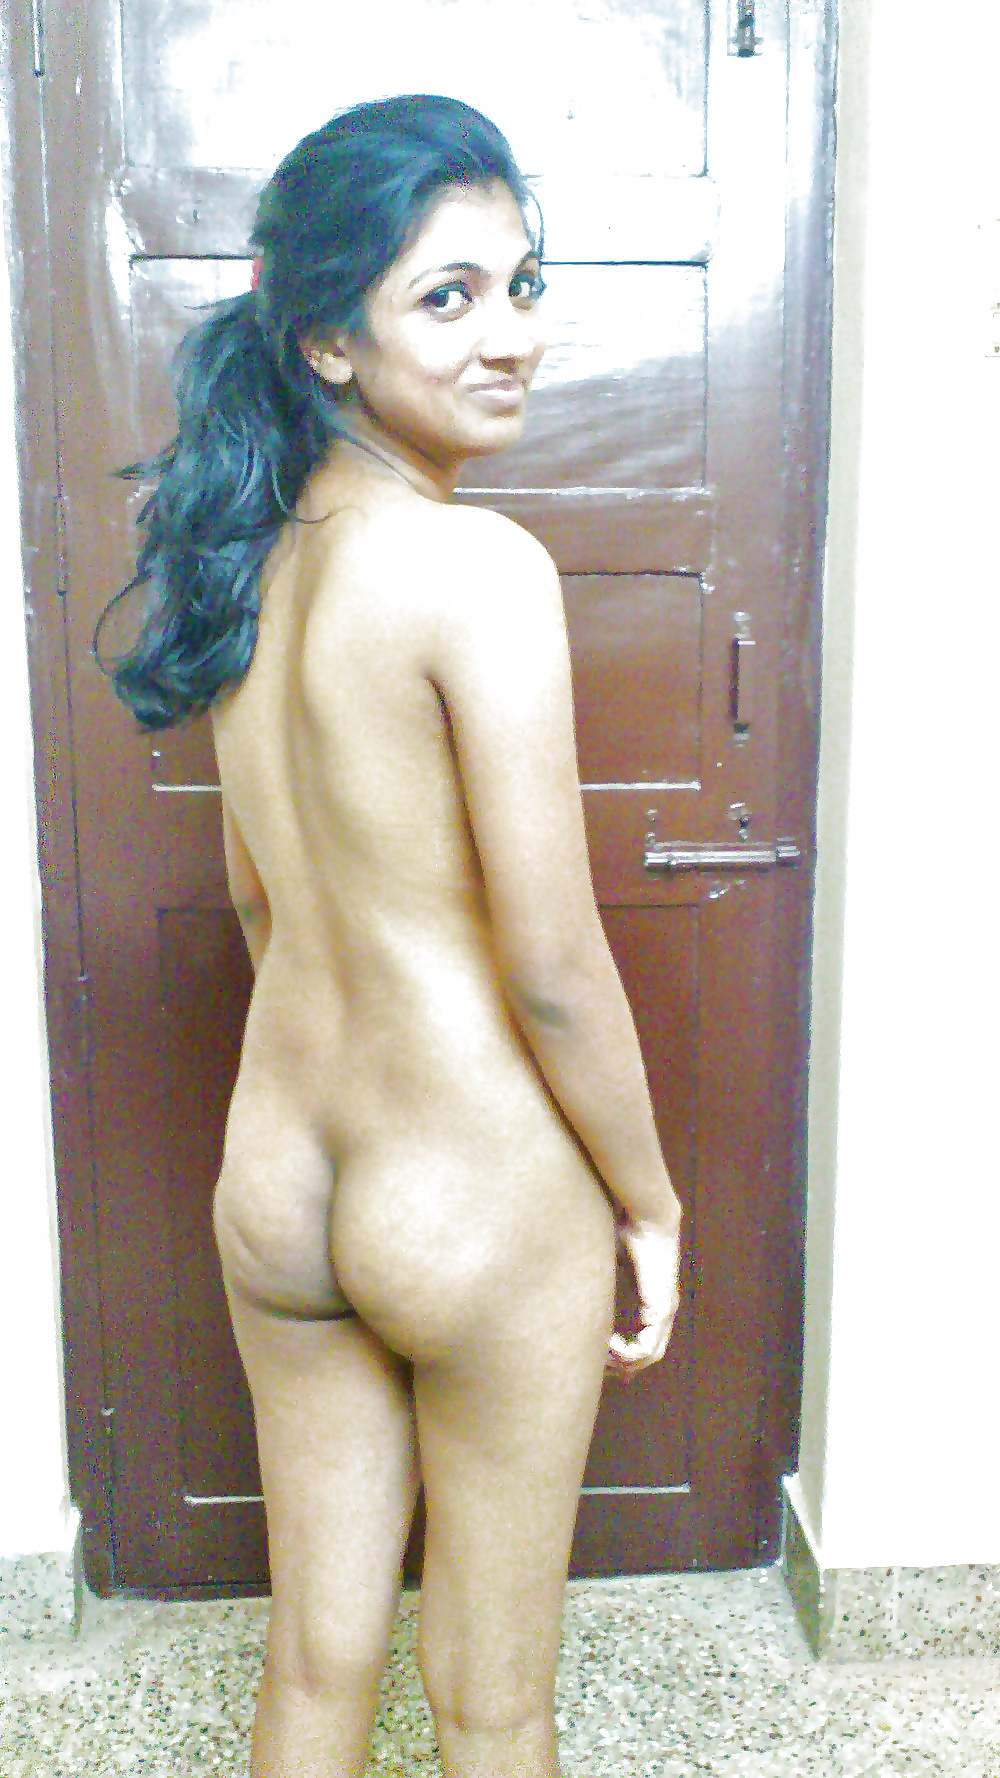 Chennai college girl nude photos